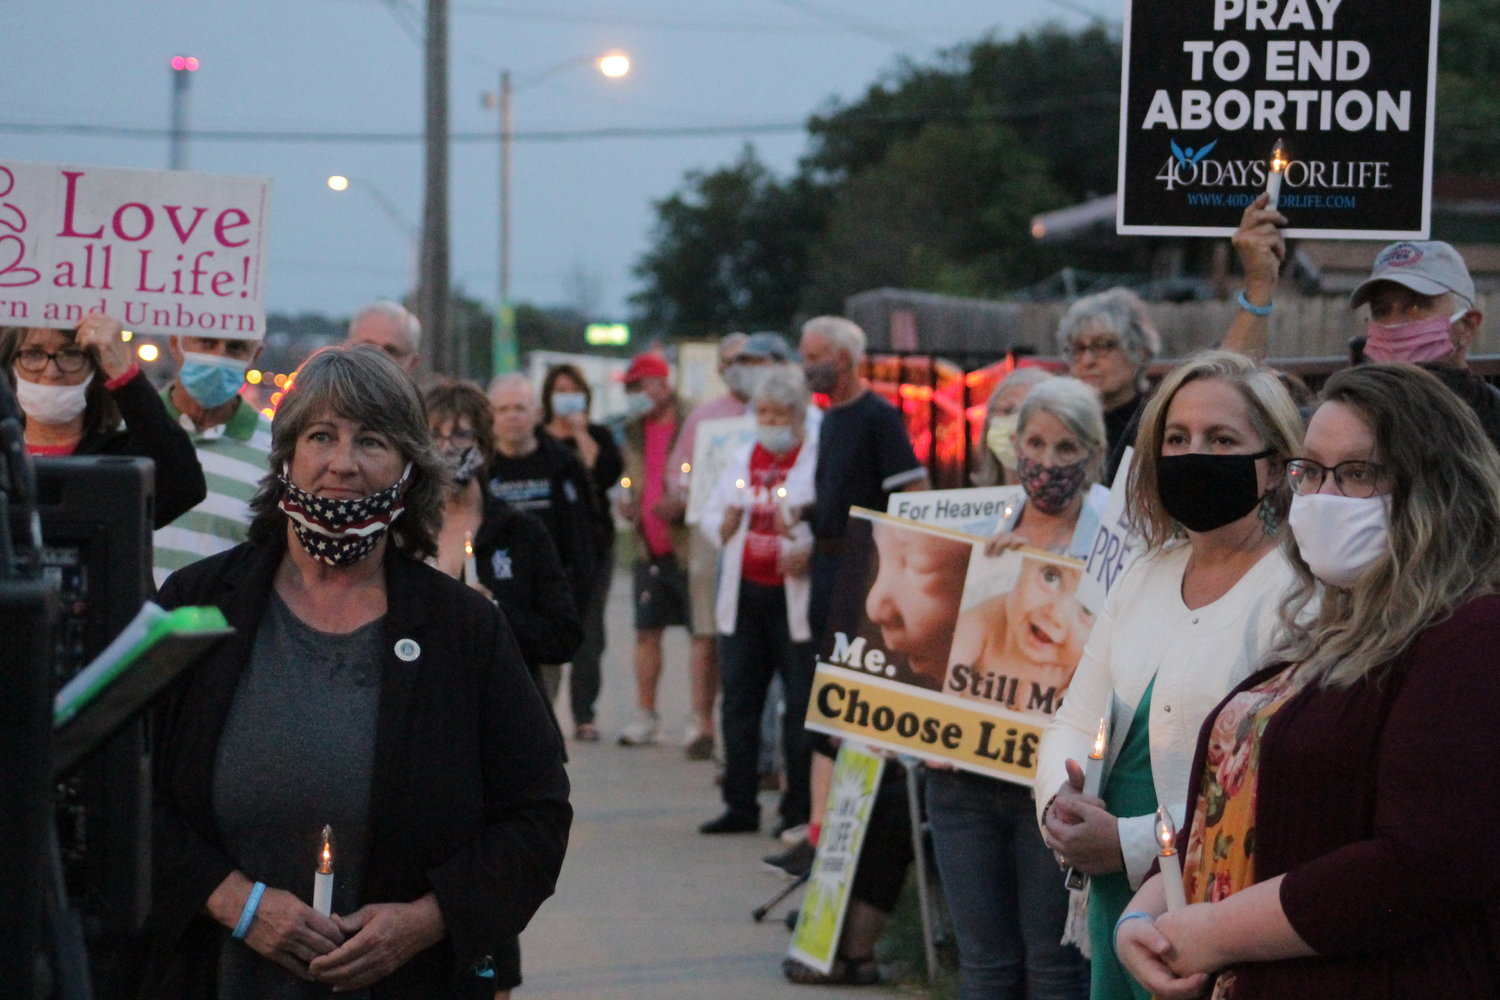 About 60 people take part in a kickoff rally and candlelight prayer vigil on the sidewalk outside Planned Parenthood on Sept. 22, to mark the beginning of the Columbia 40 Days of Life fall campaign.